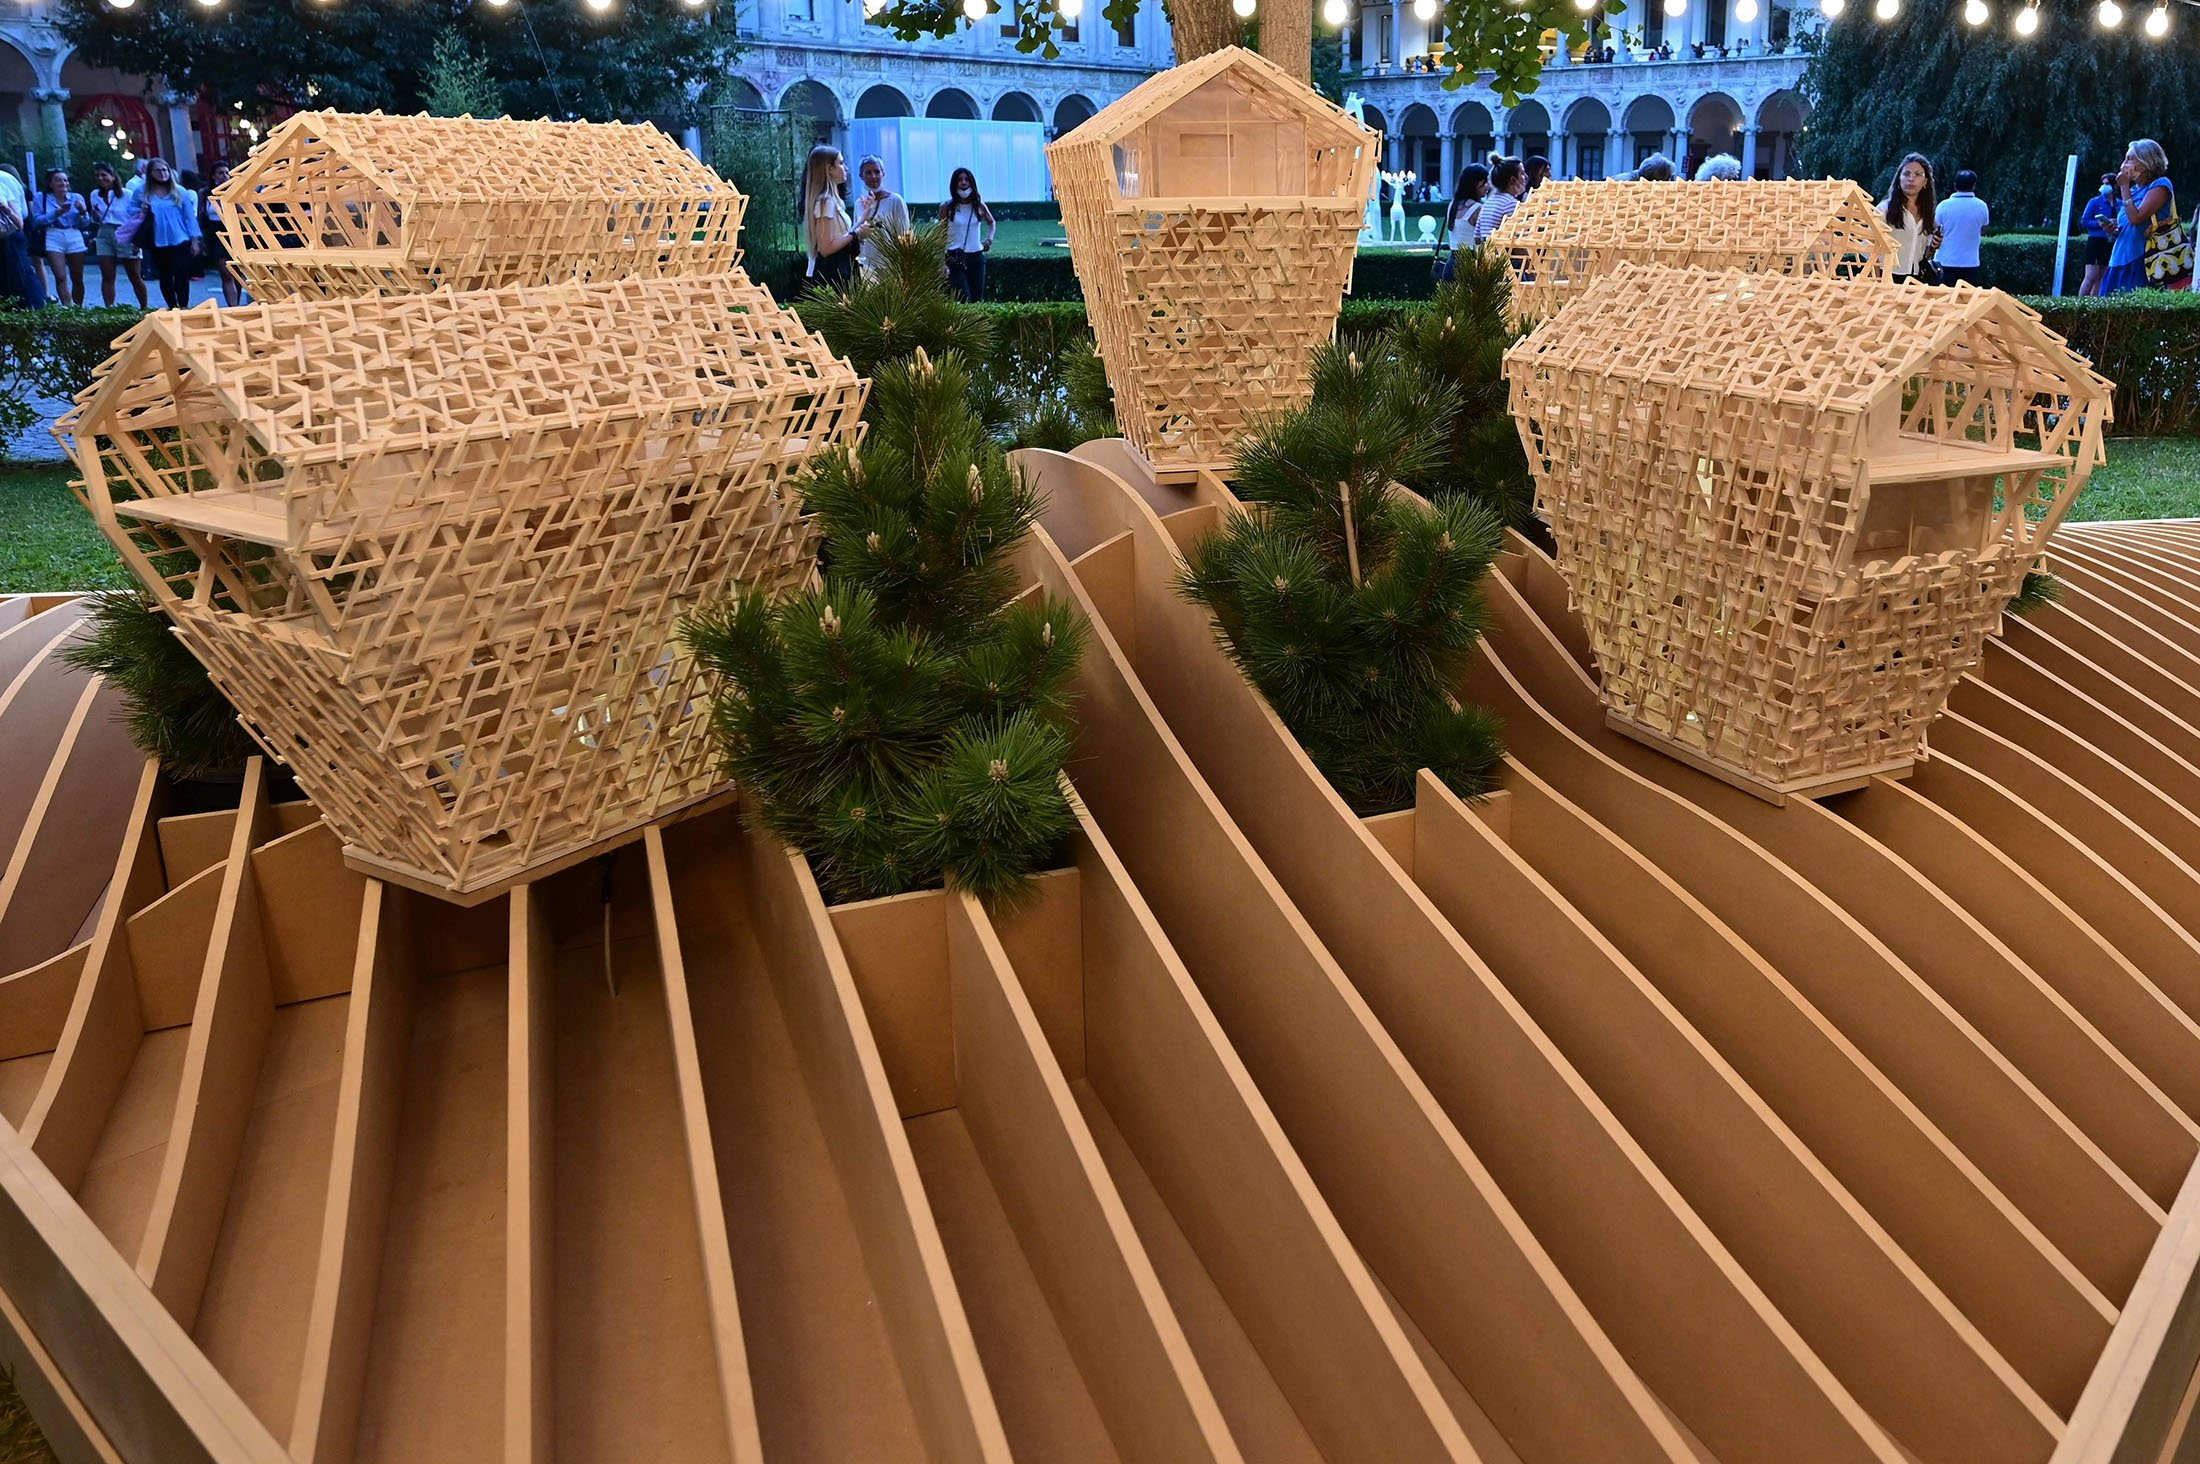 A project called 'Vertical Chalets' by Italian studio Peter Pichler Architecture at the University of Milan during the Fuori Salone 2021 design week, in Milan, Italy, Sept. 6, 2021. (AFP Photo)